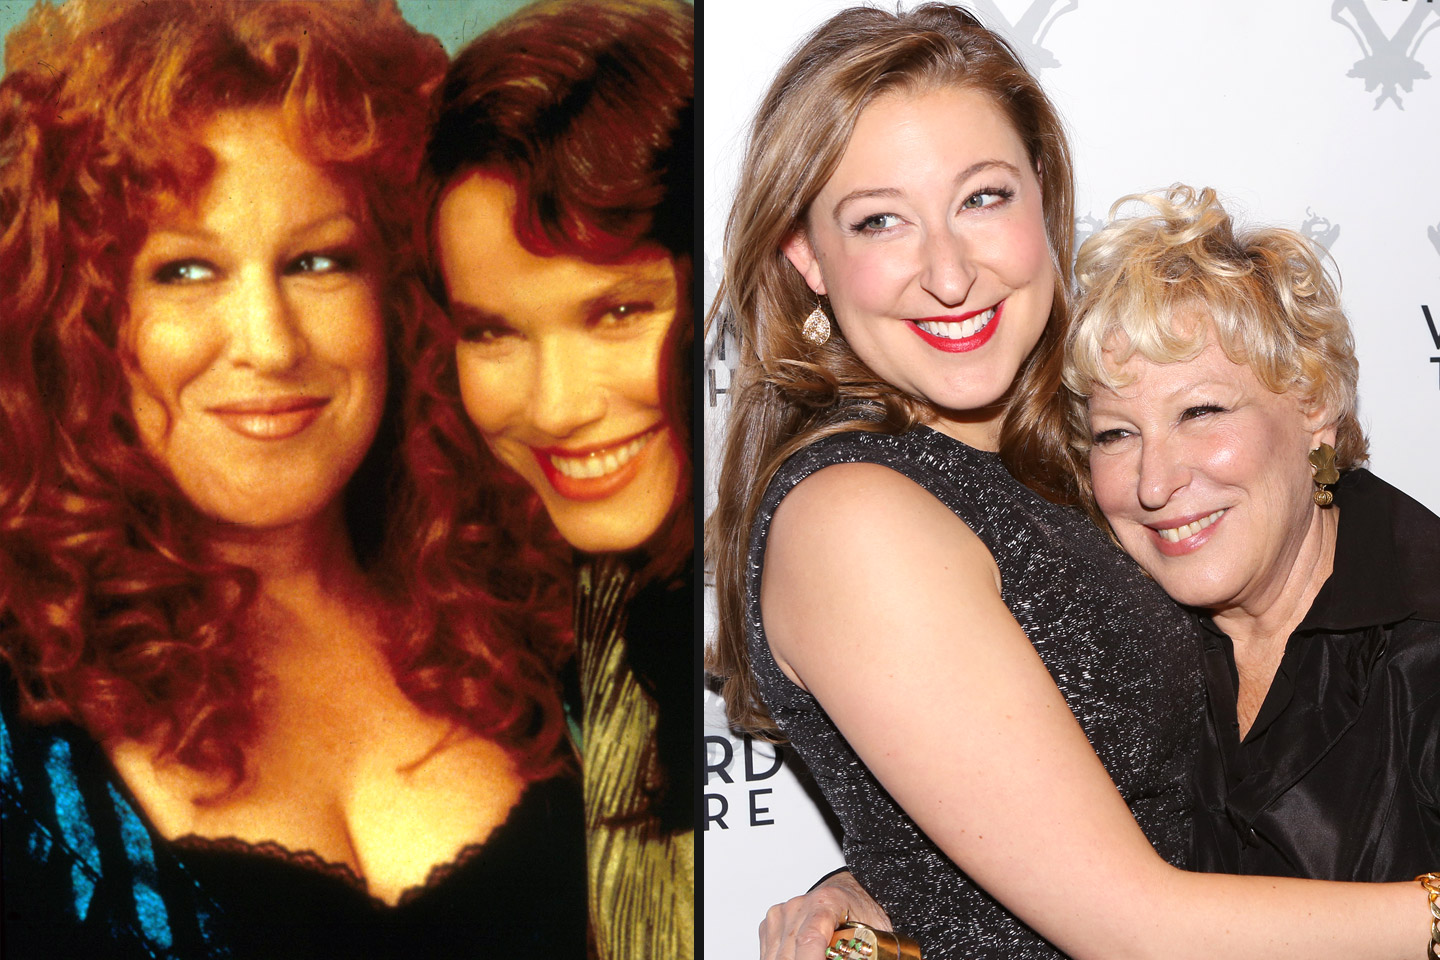 5550e84c1aaec7043ea467ea_celebrity-mom-lookalikes-shiloh-bette-midler-sophie-von-haselberg-06